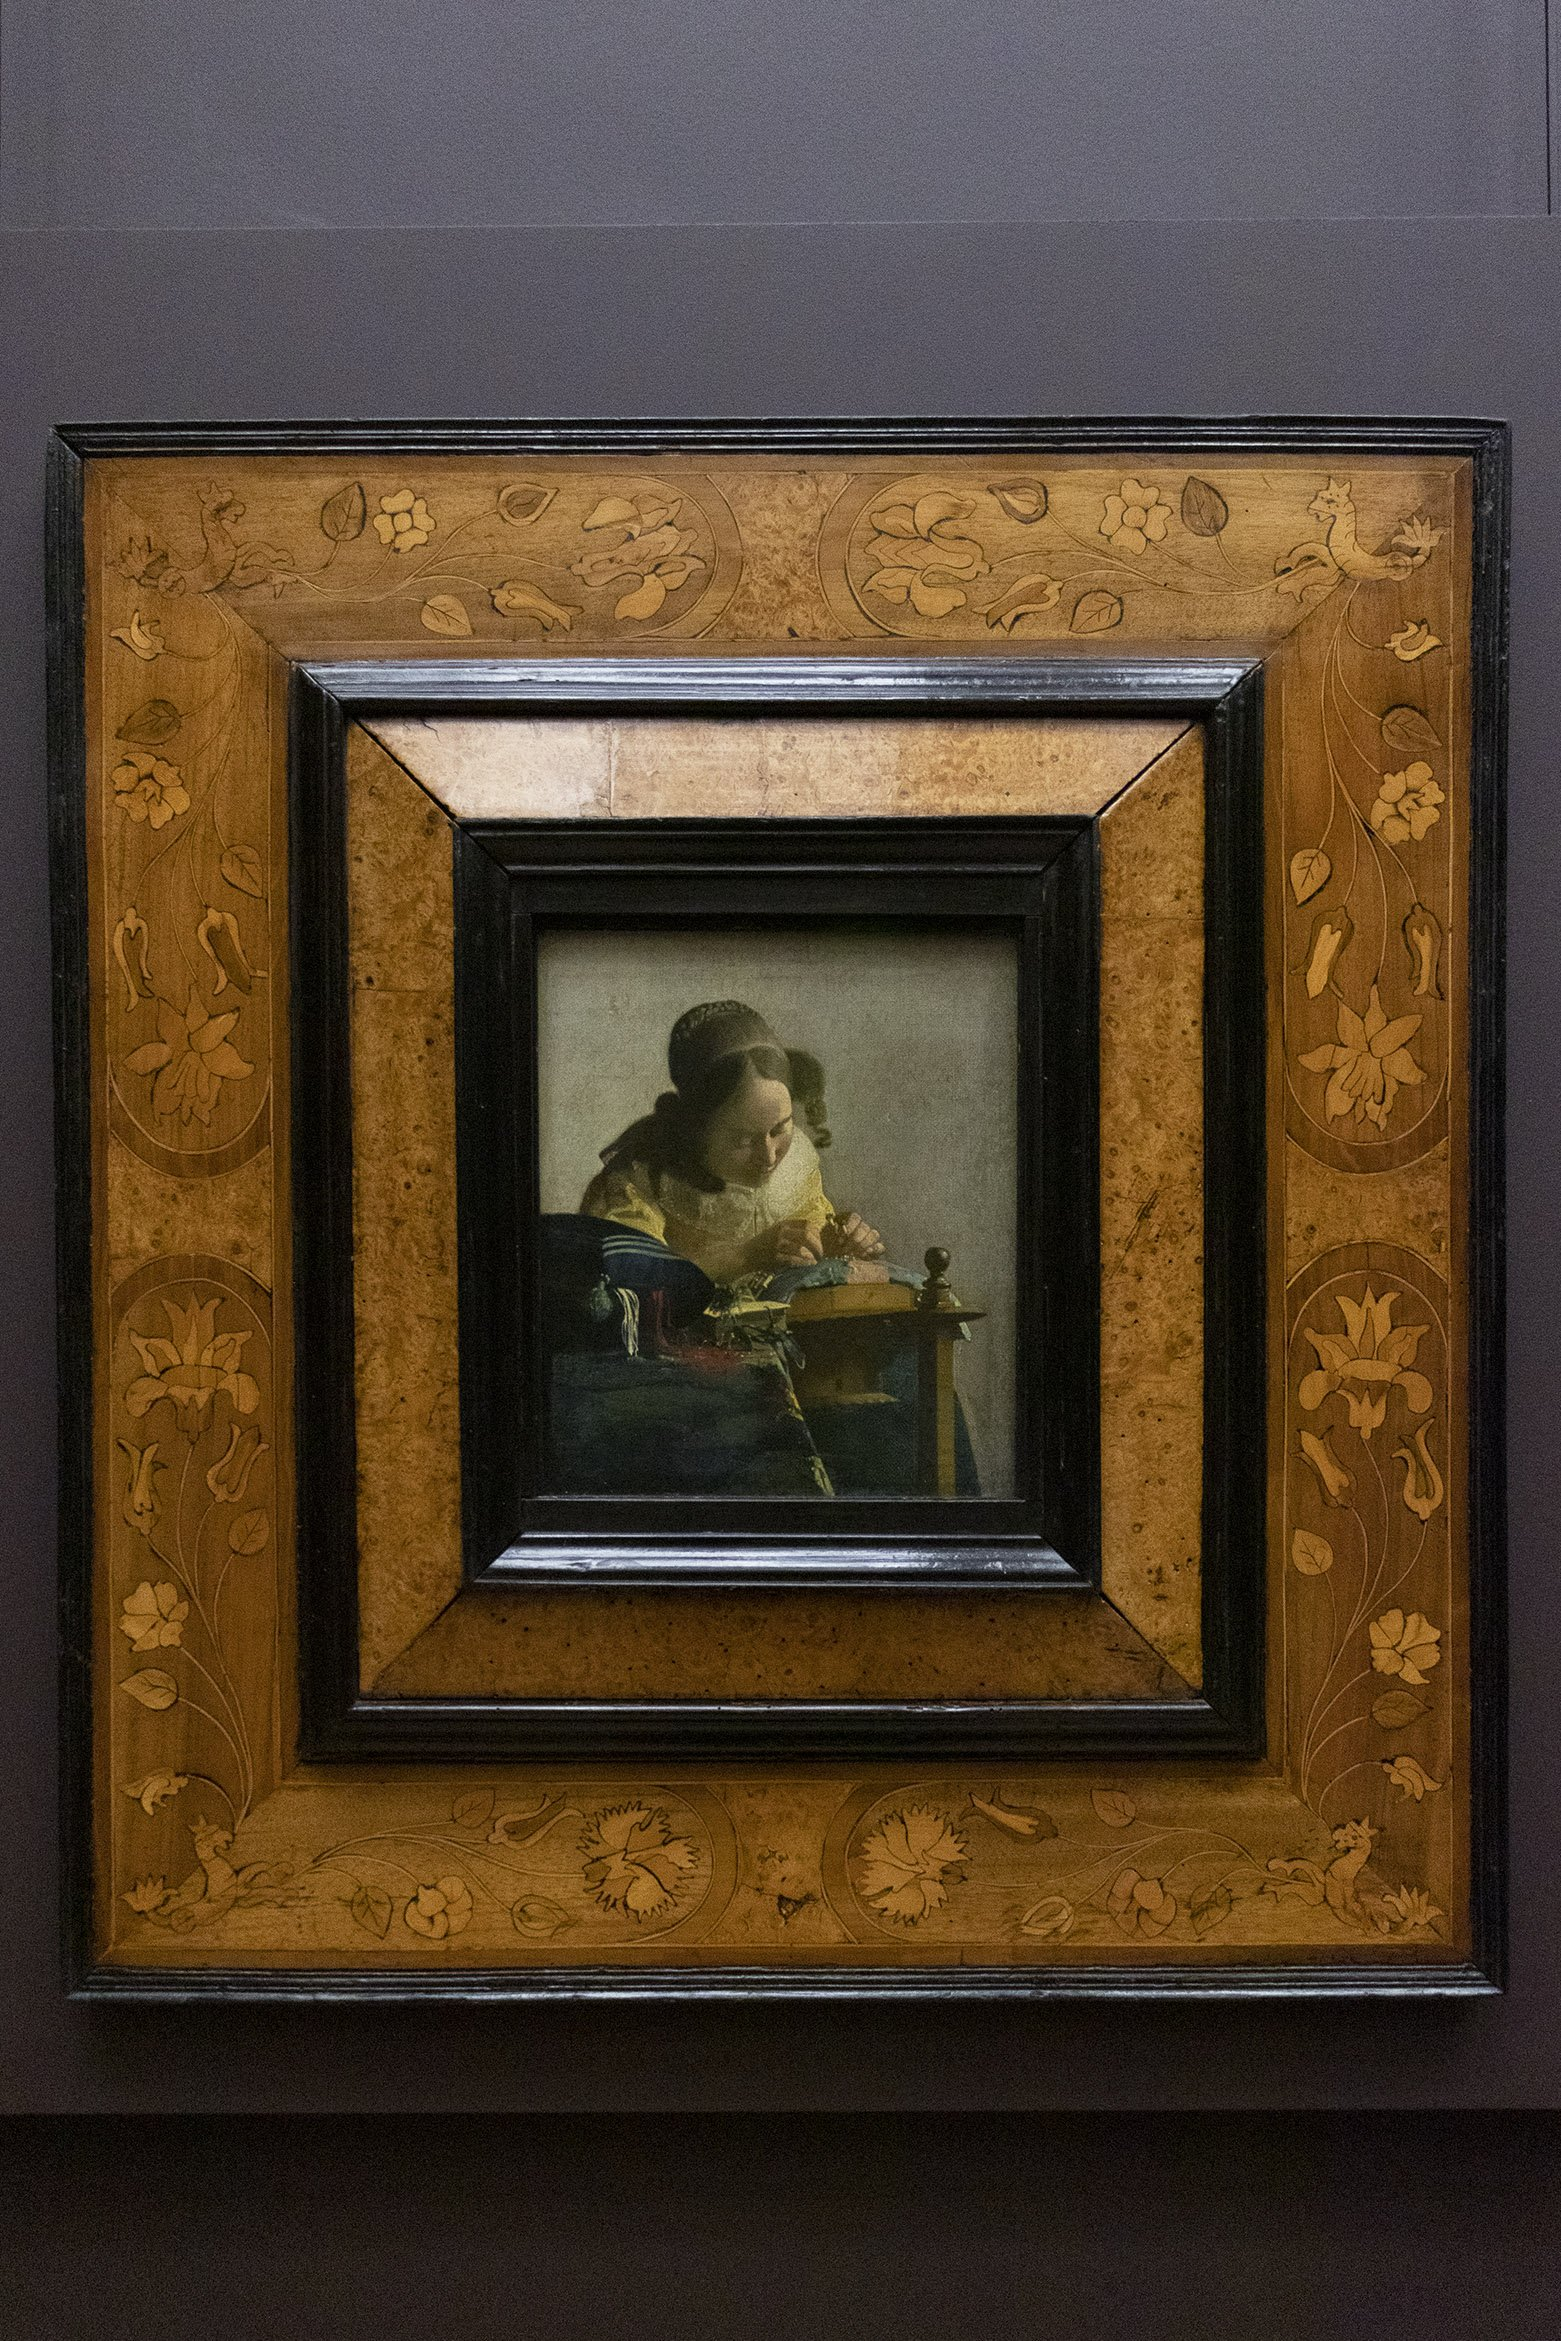 The Lacemaker by Vermeer, at the Louvre